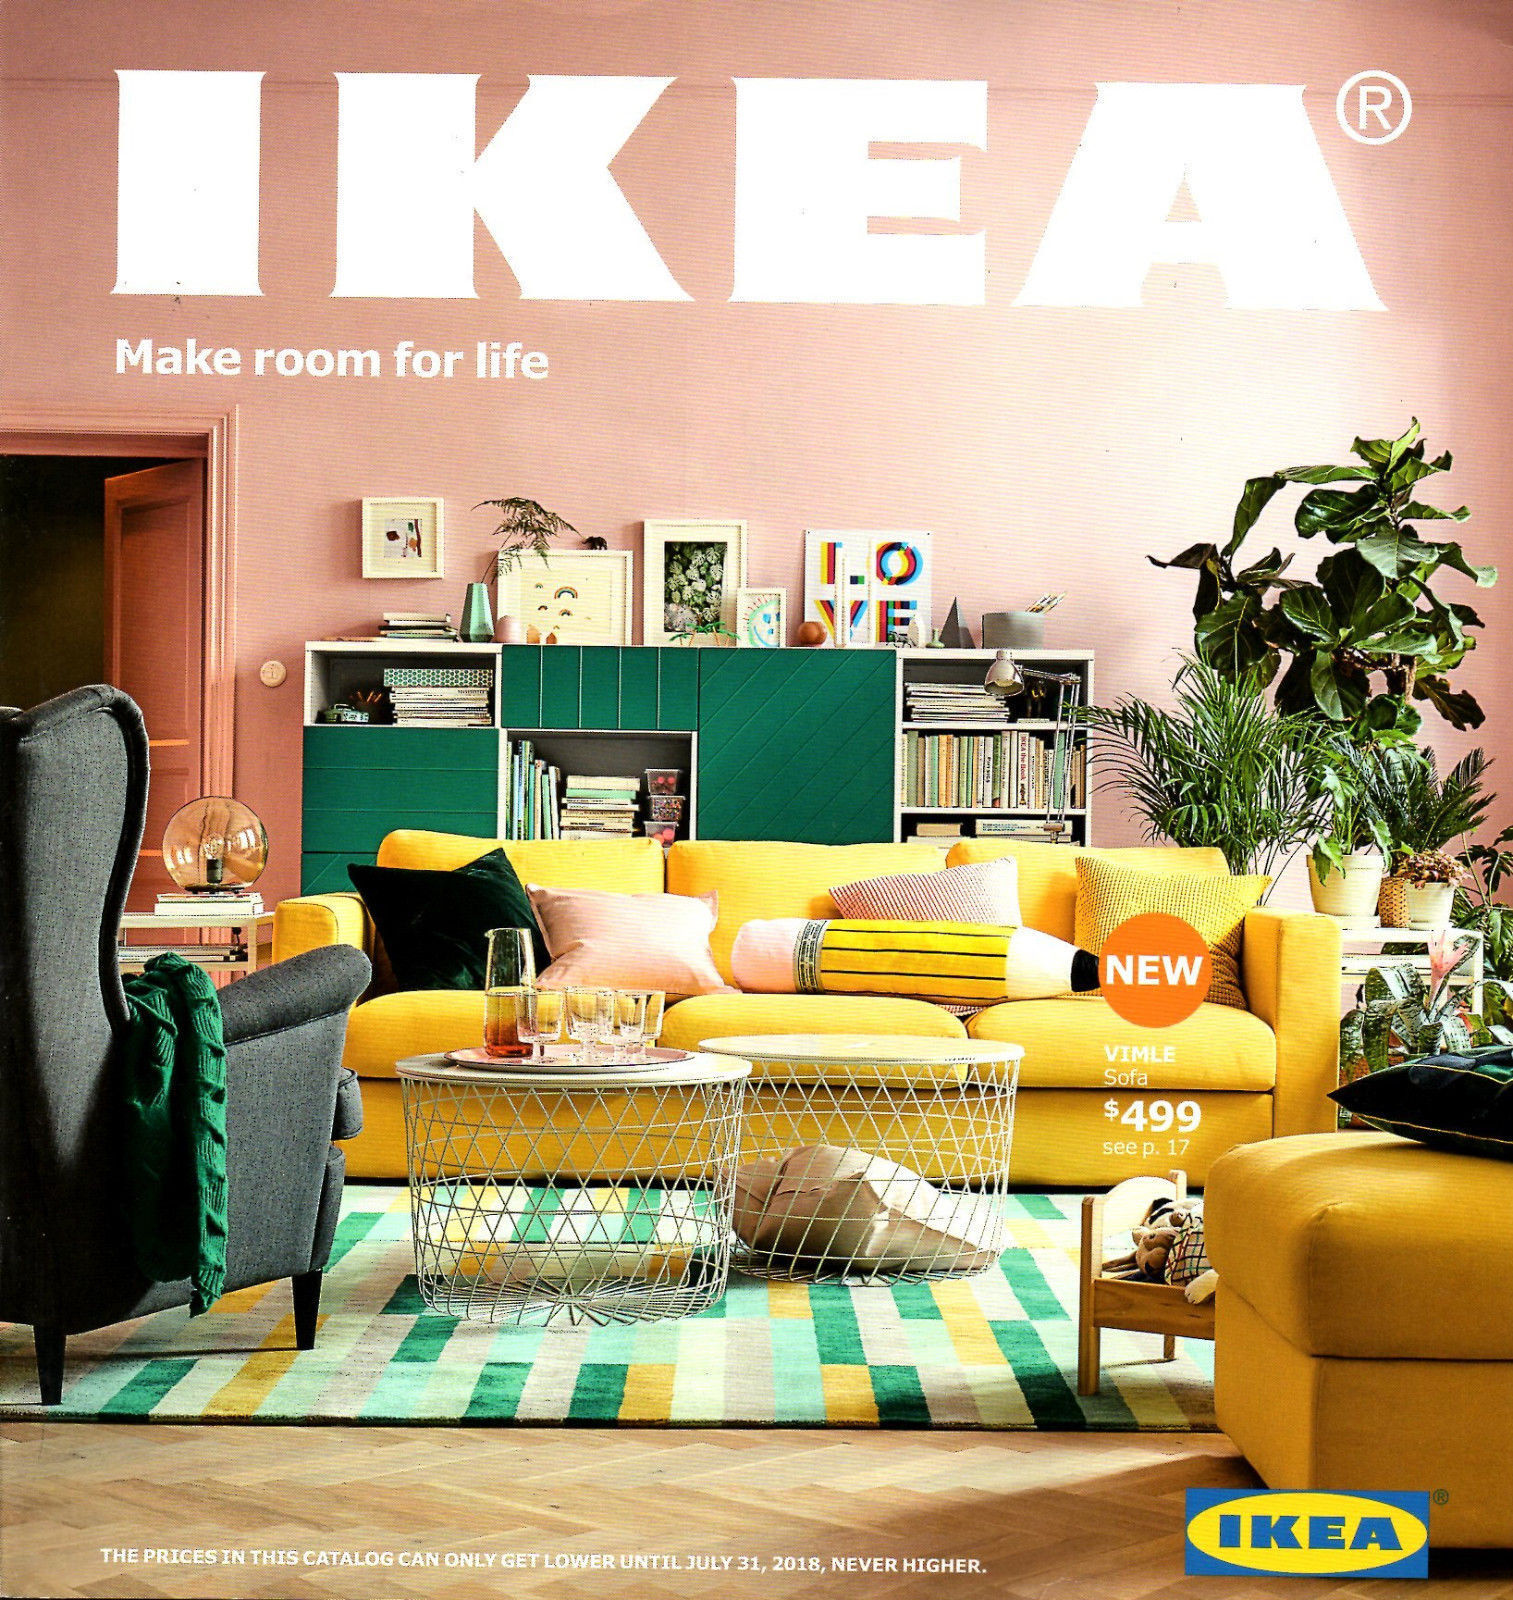 Furniture fashion online home magazine Fcml India - Online Shopping Home Decor, Furniture